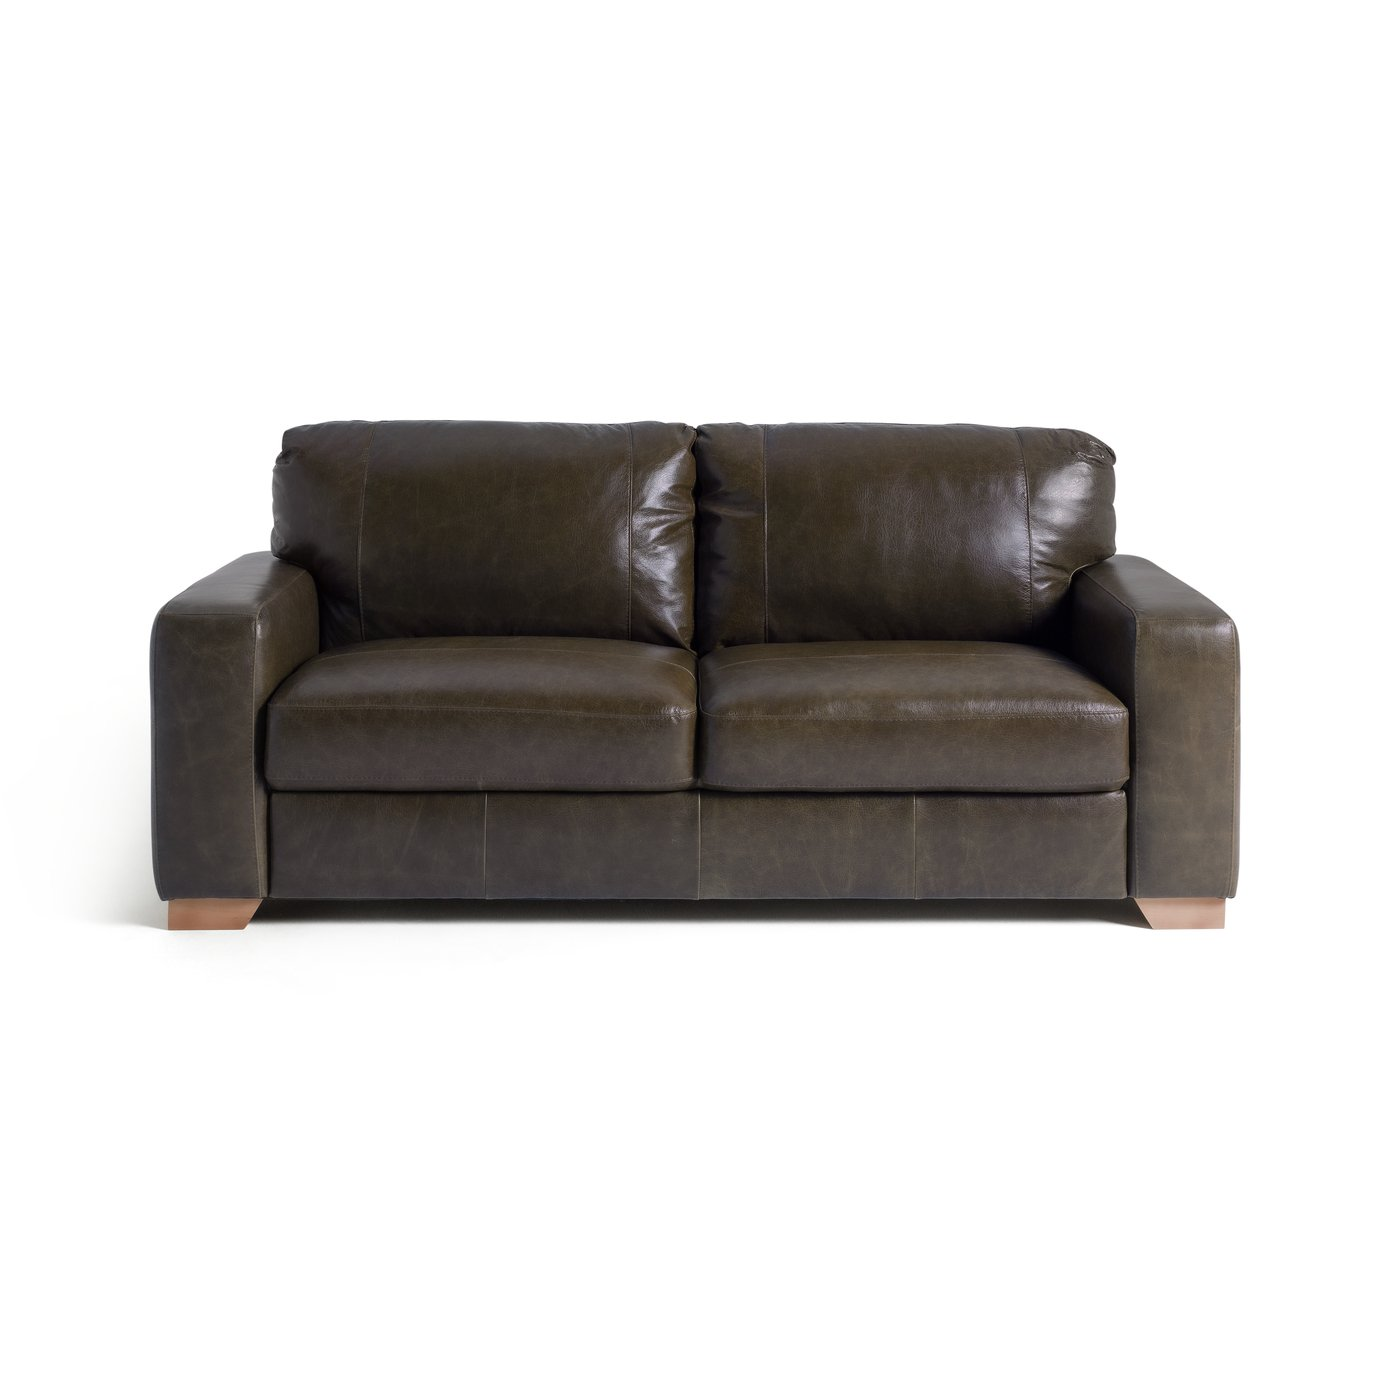 Sofa Settee Argos Buy Argos Home Eton 3 Seater Leather Sofa Dark Brown